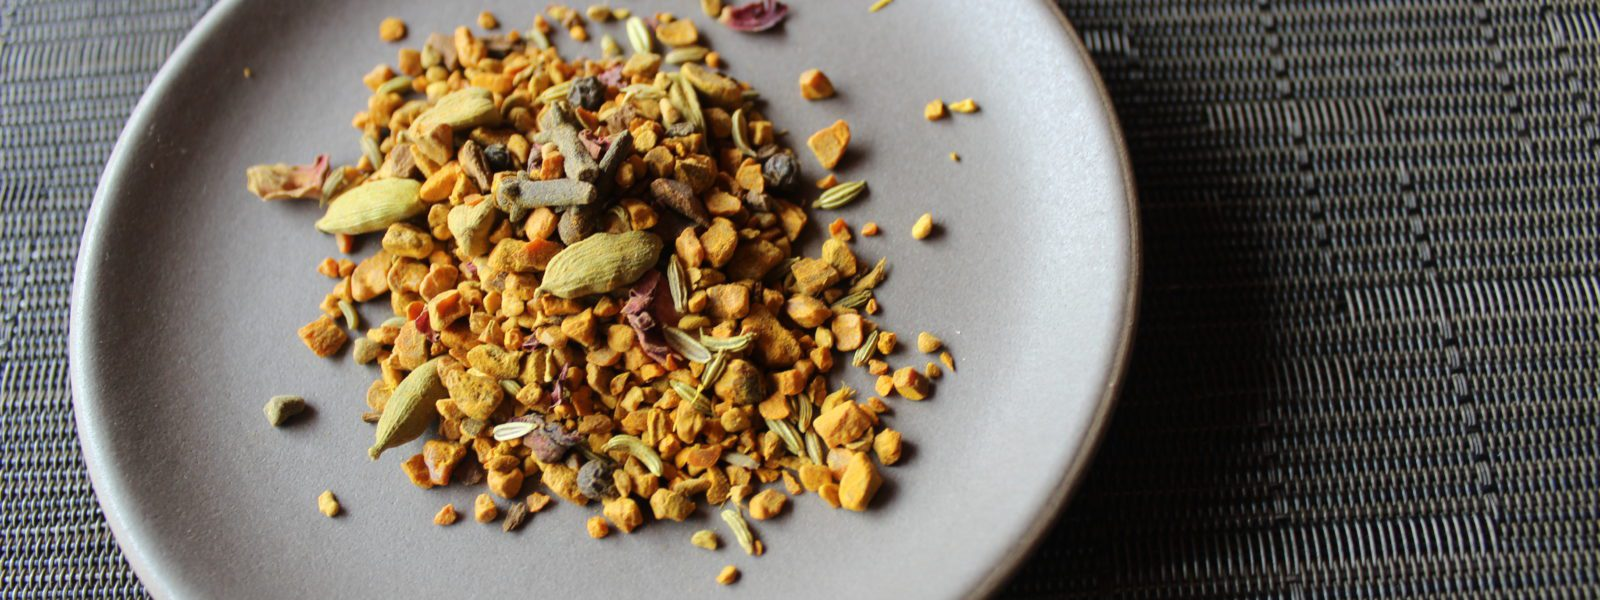 Loose turmeric chai blend on a plate.